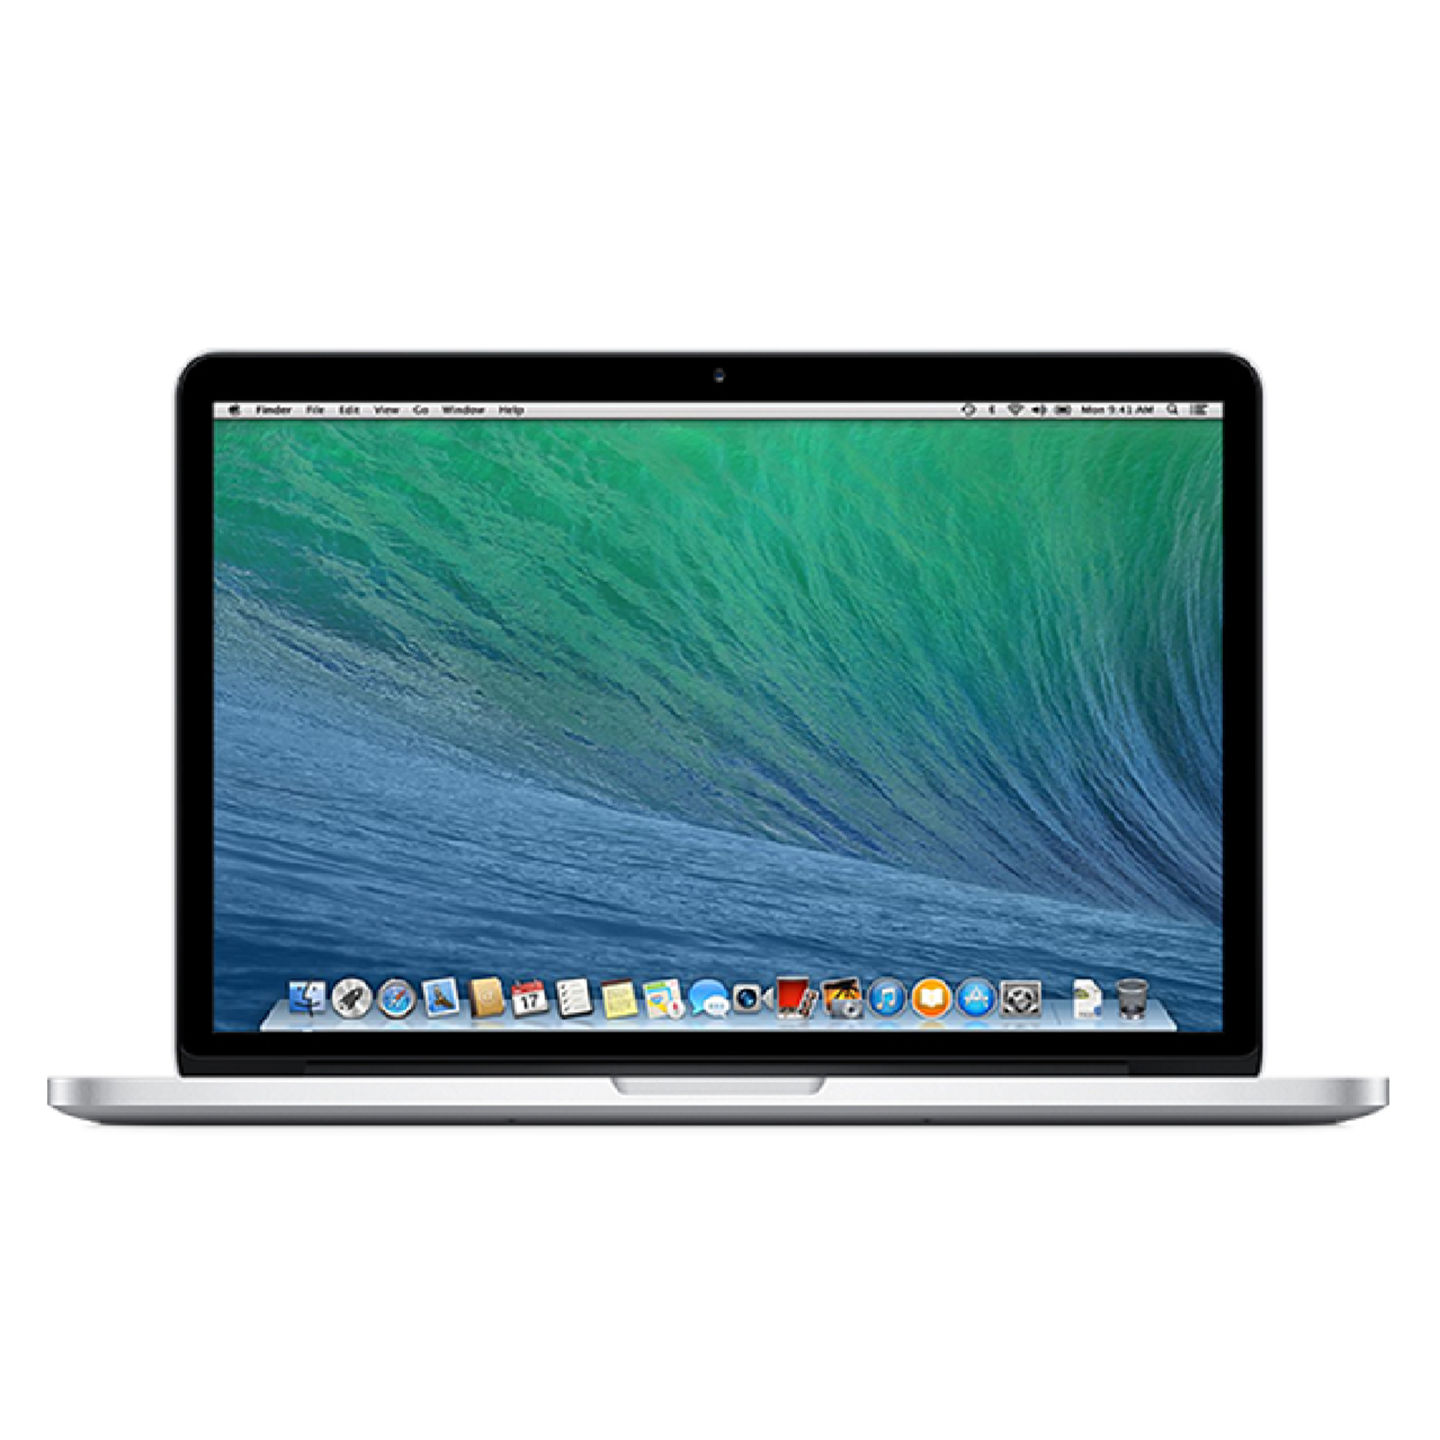 MacBook Pro (Retina, 13-inch, Late 2013)Core i5/8GB/SSD256GB E793